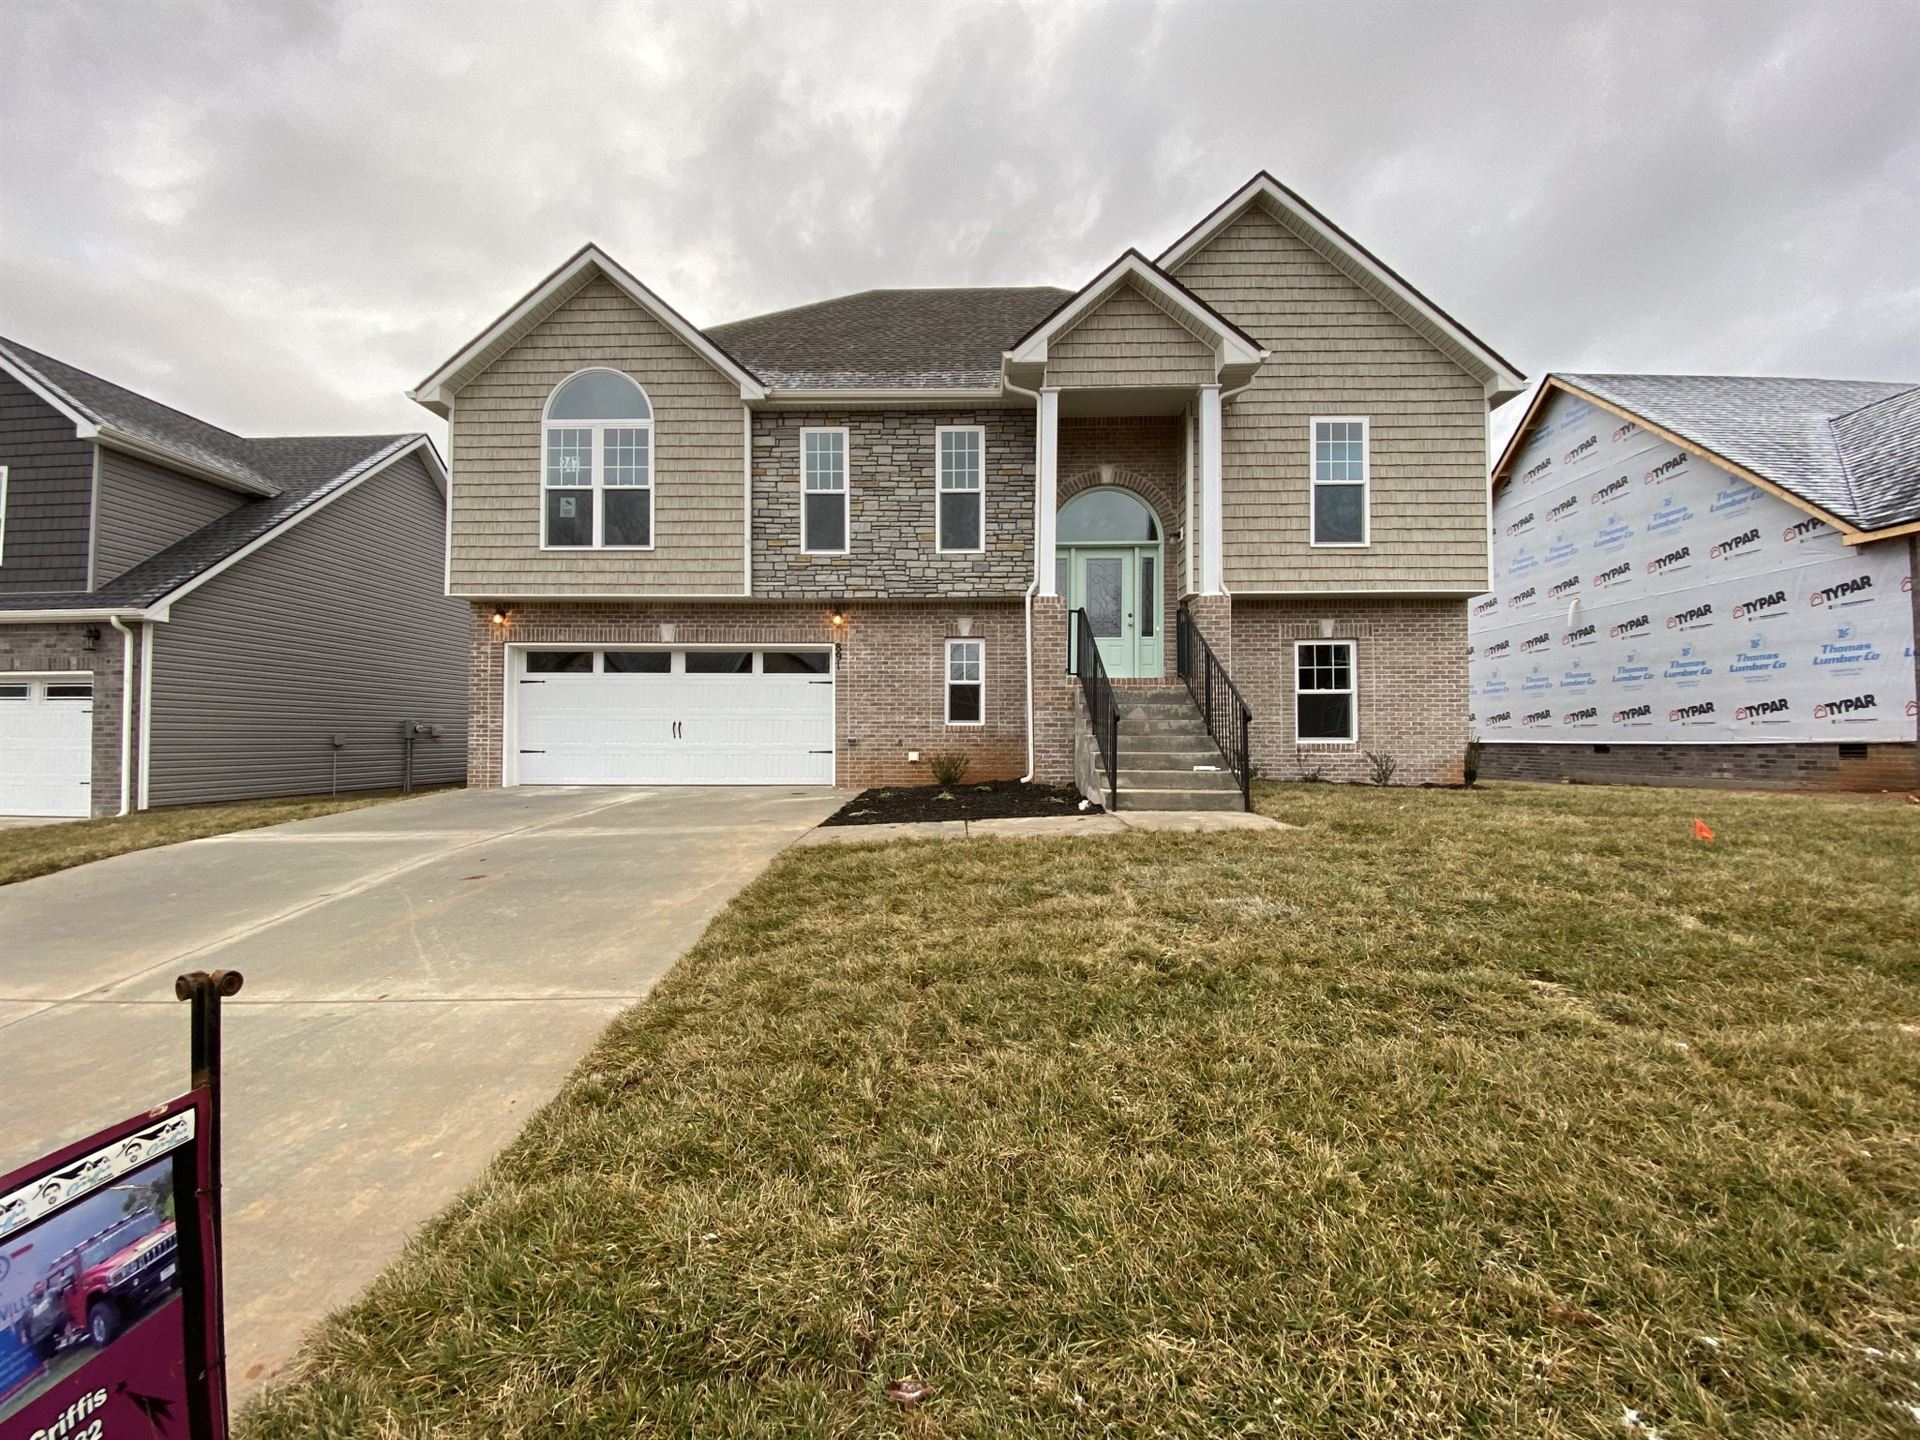 247 Griffey Estates, Clarksville, TN 37042 - MLS#: 2160675